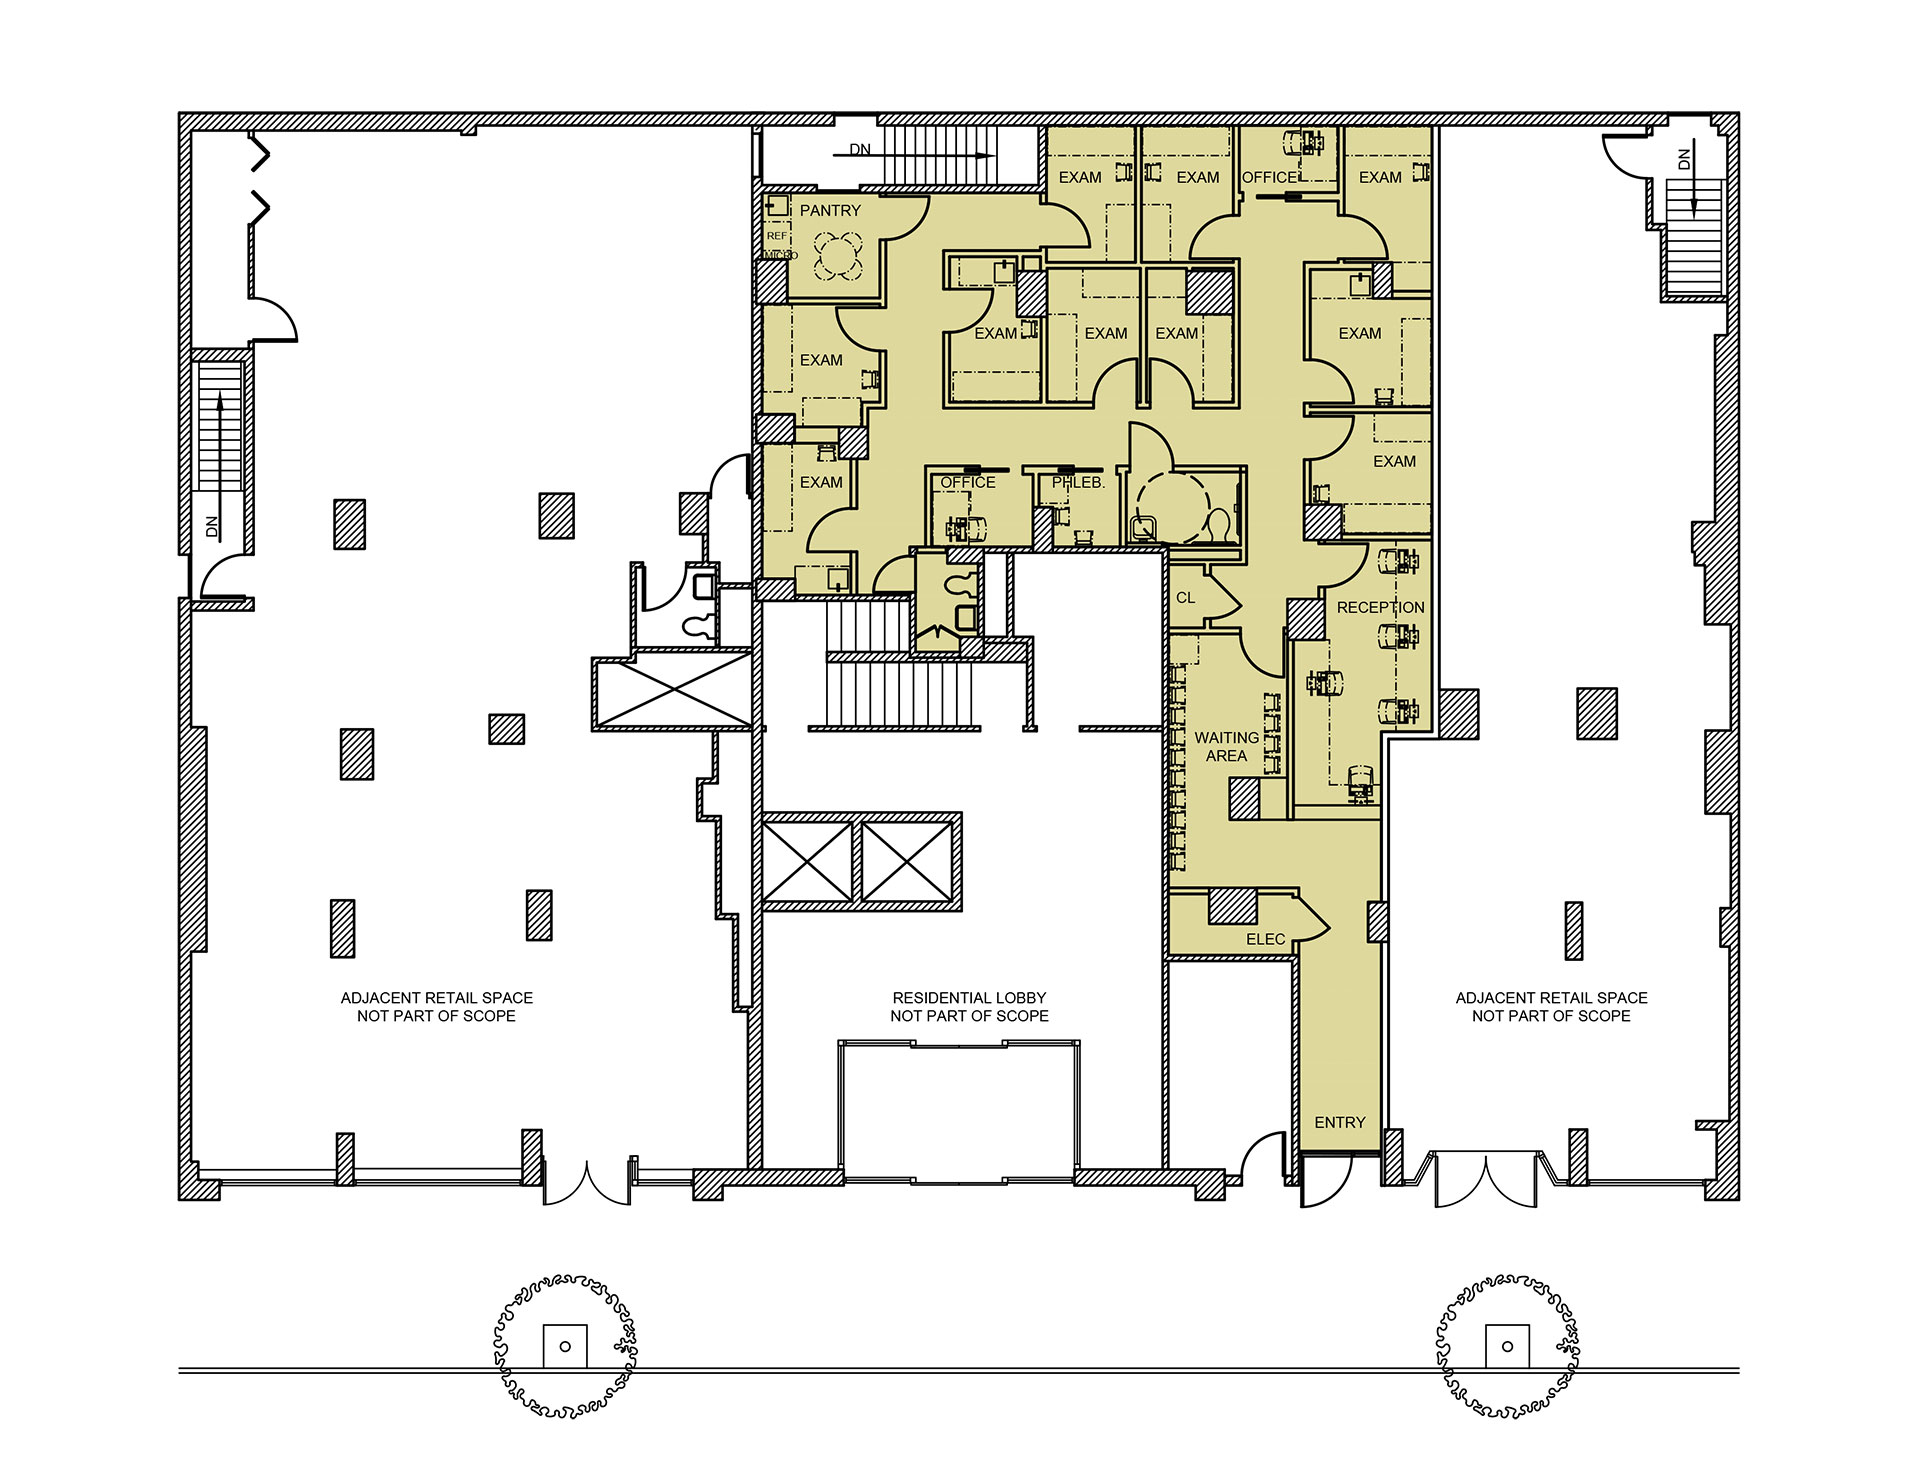 Floorplan of the medical offices at 111 Third Avenue